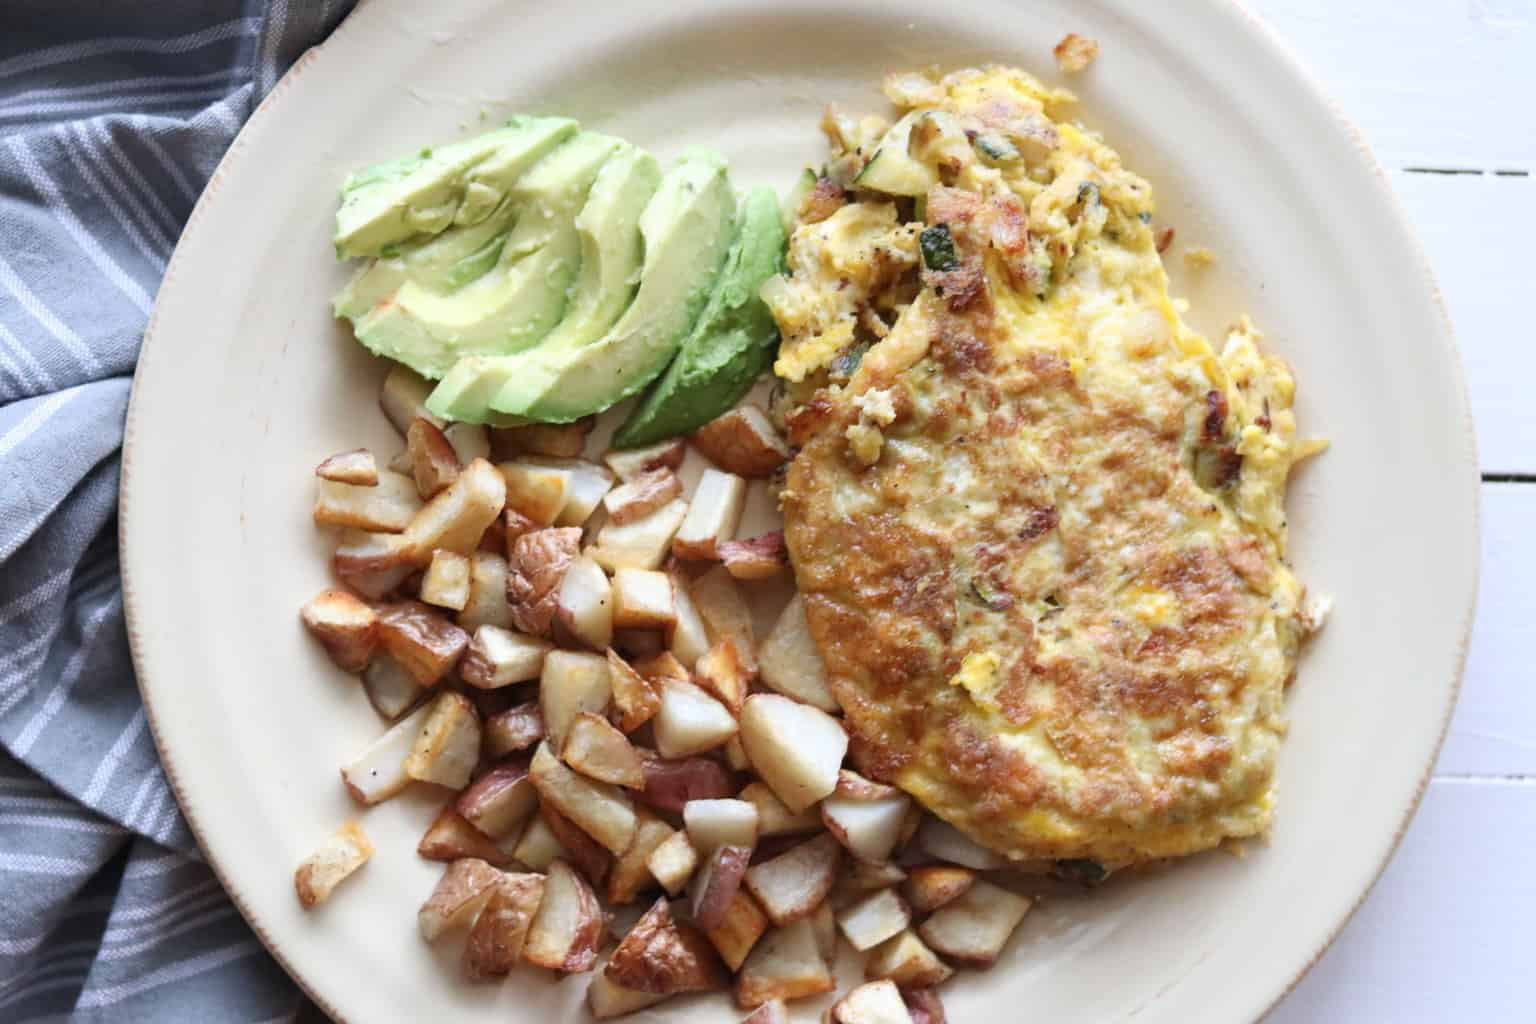 Whole 30 vegetable omelet served with hash browns, avocados, and sauerkraut.